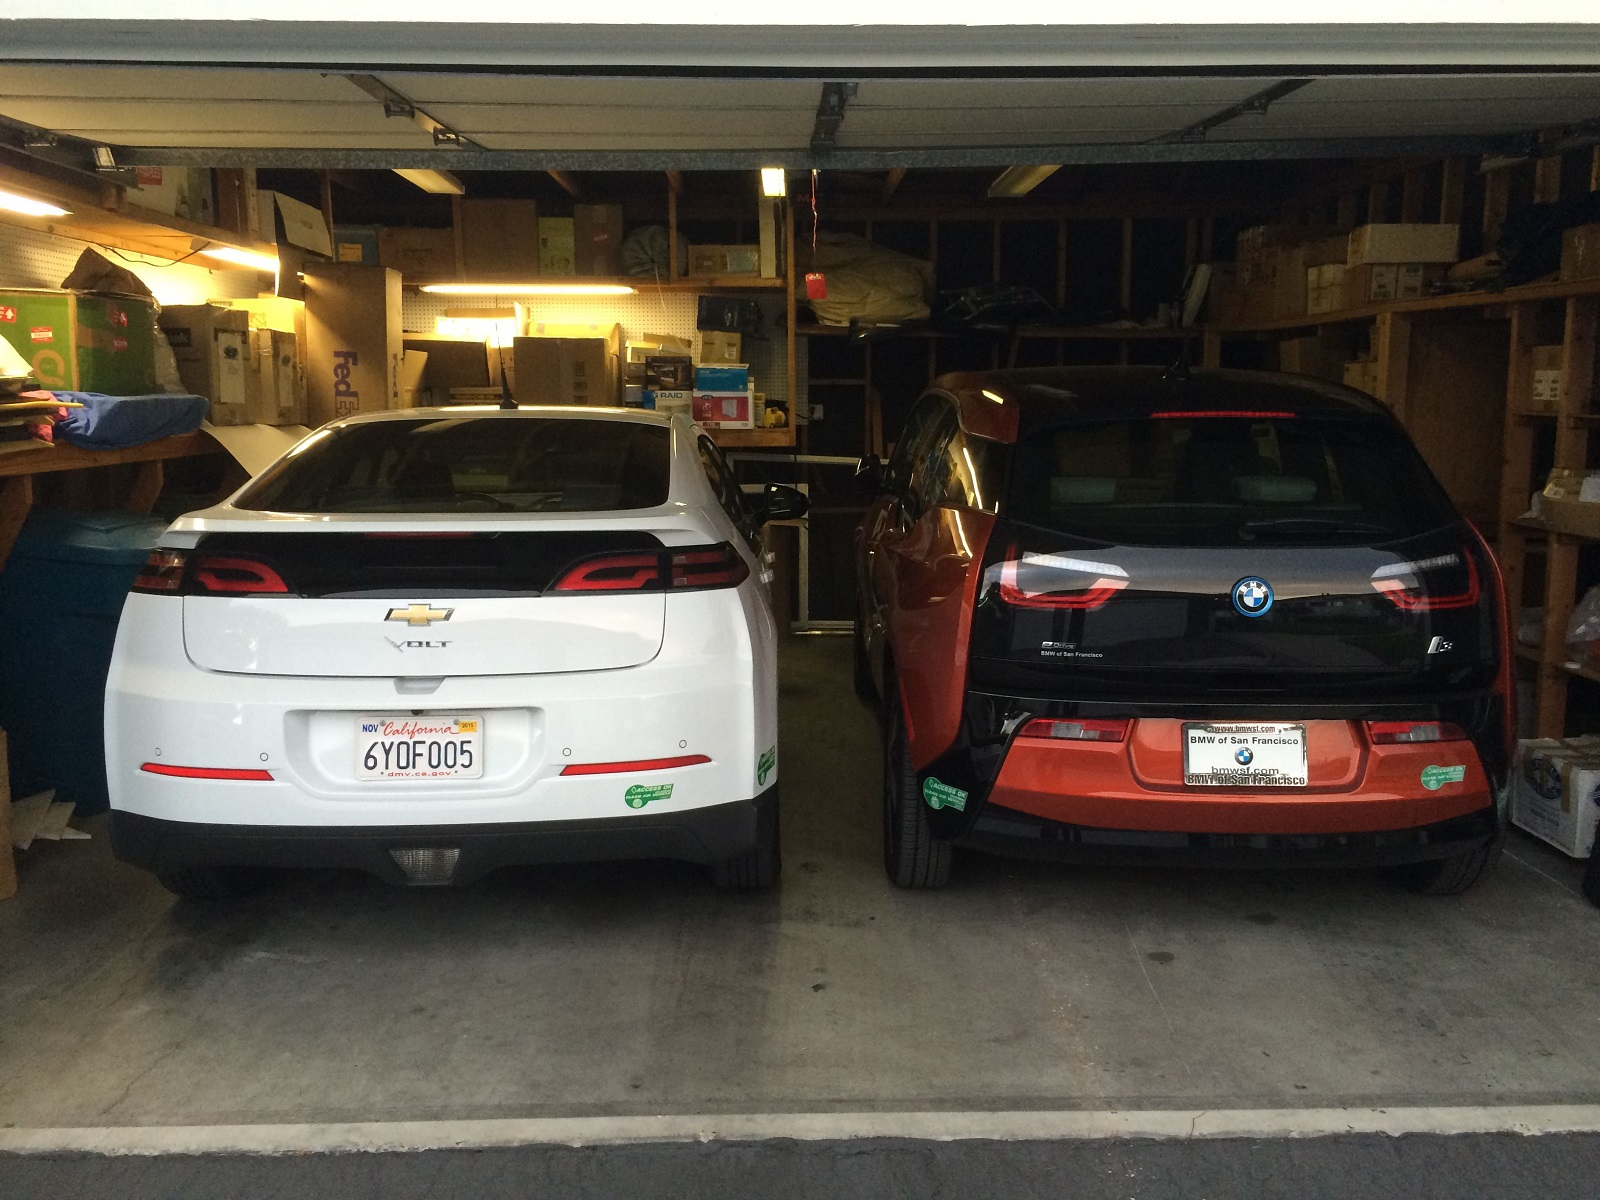 Why A 2015 Bmw I3 Rex Replaced My 2013 Chevy Volt Electric Car